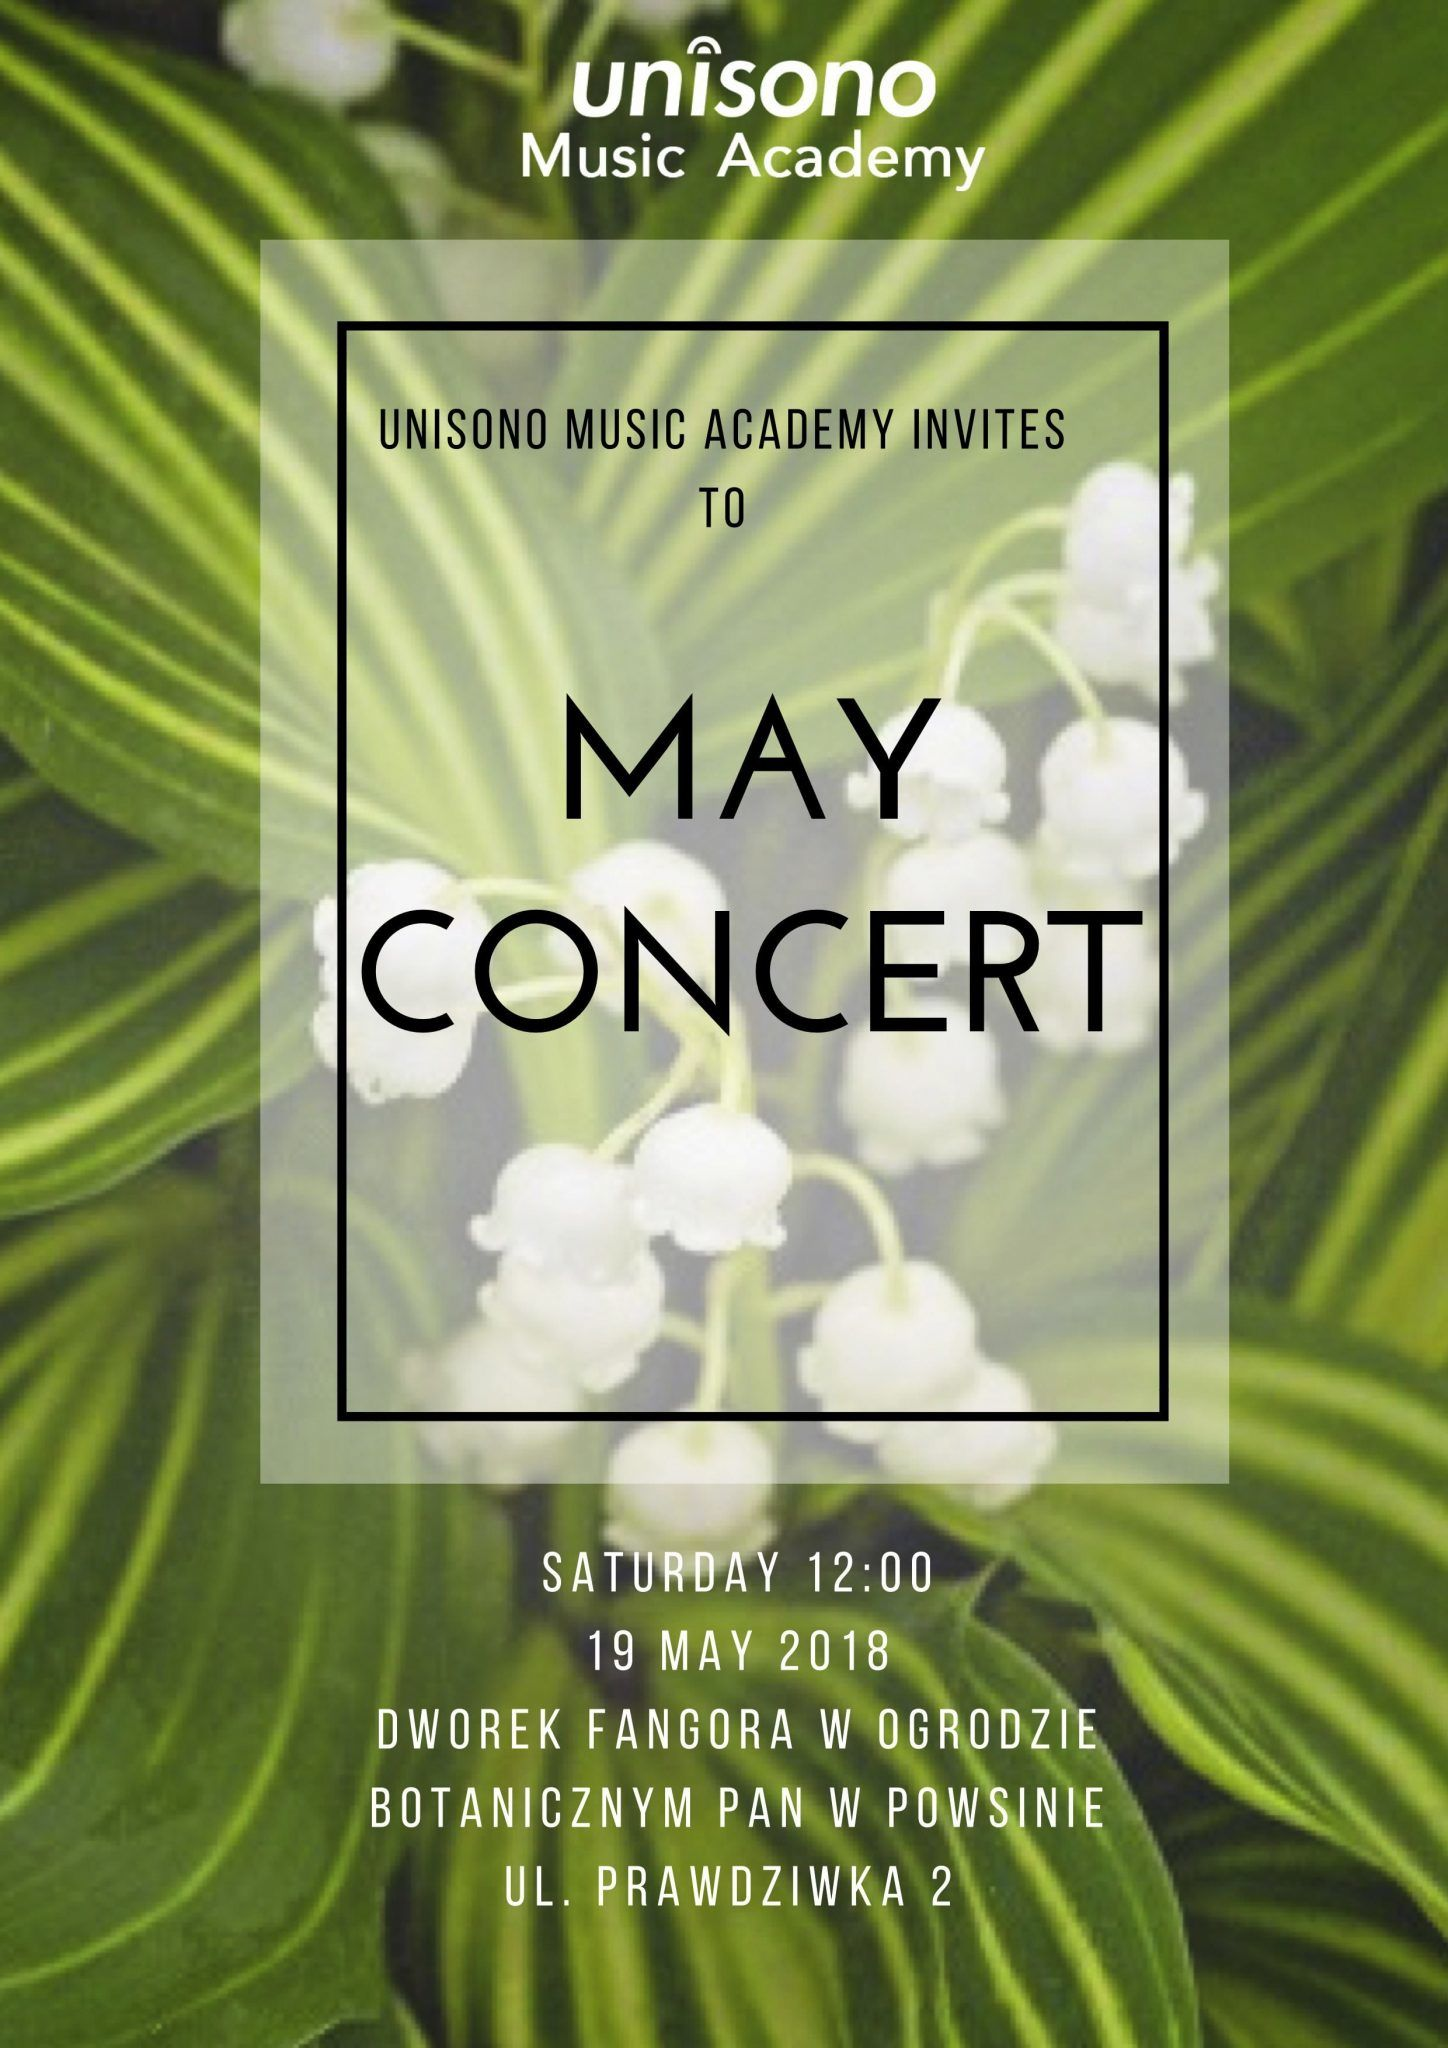 May Concert 2018 Invitation